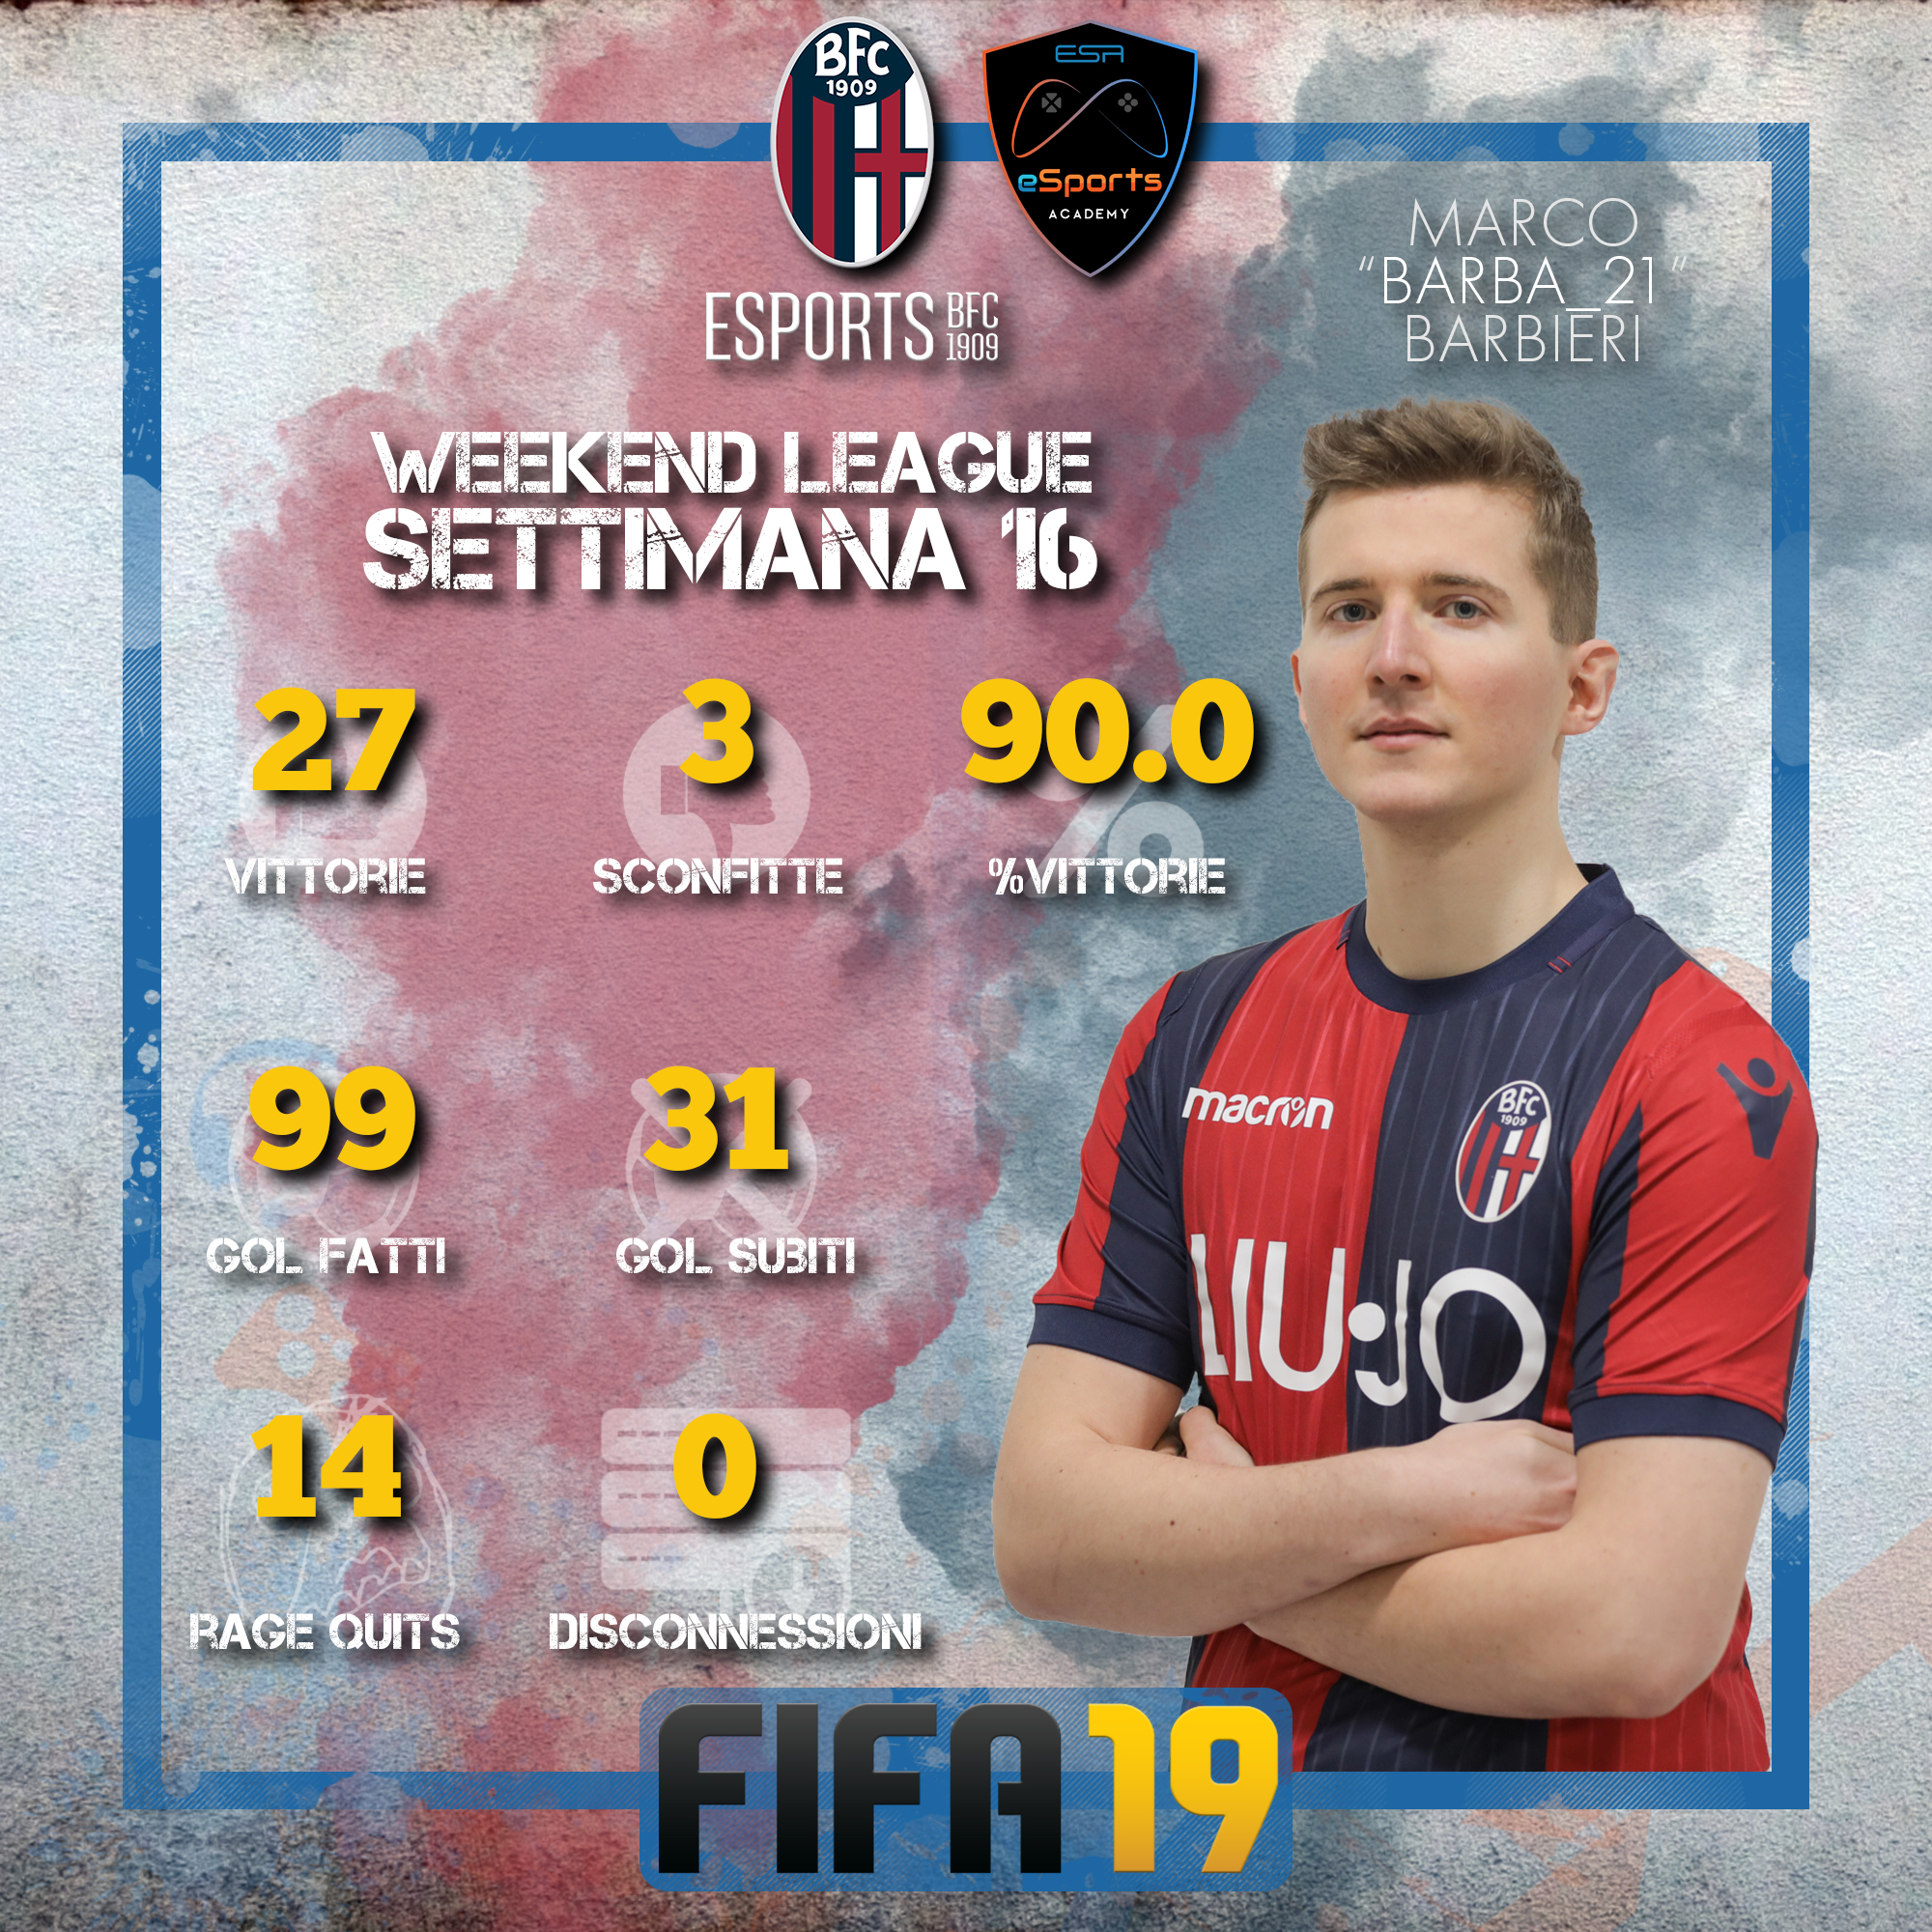 Fifa19_Weekend League_Week16_Barba_21.jpg